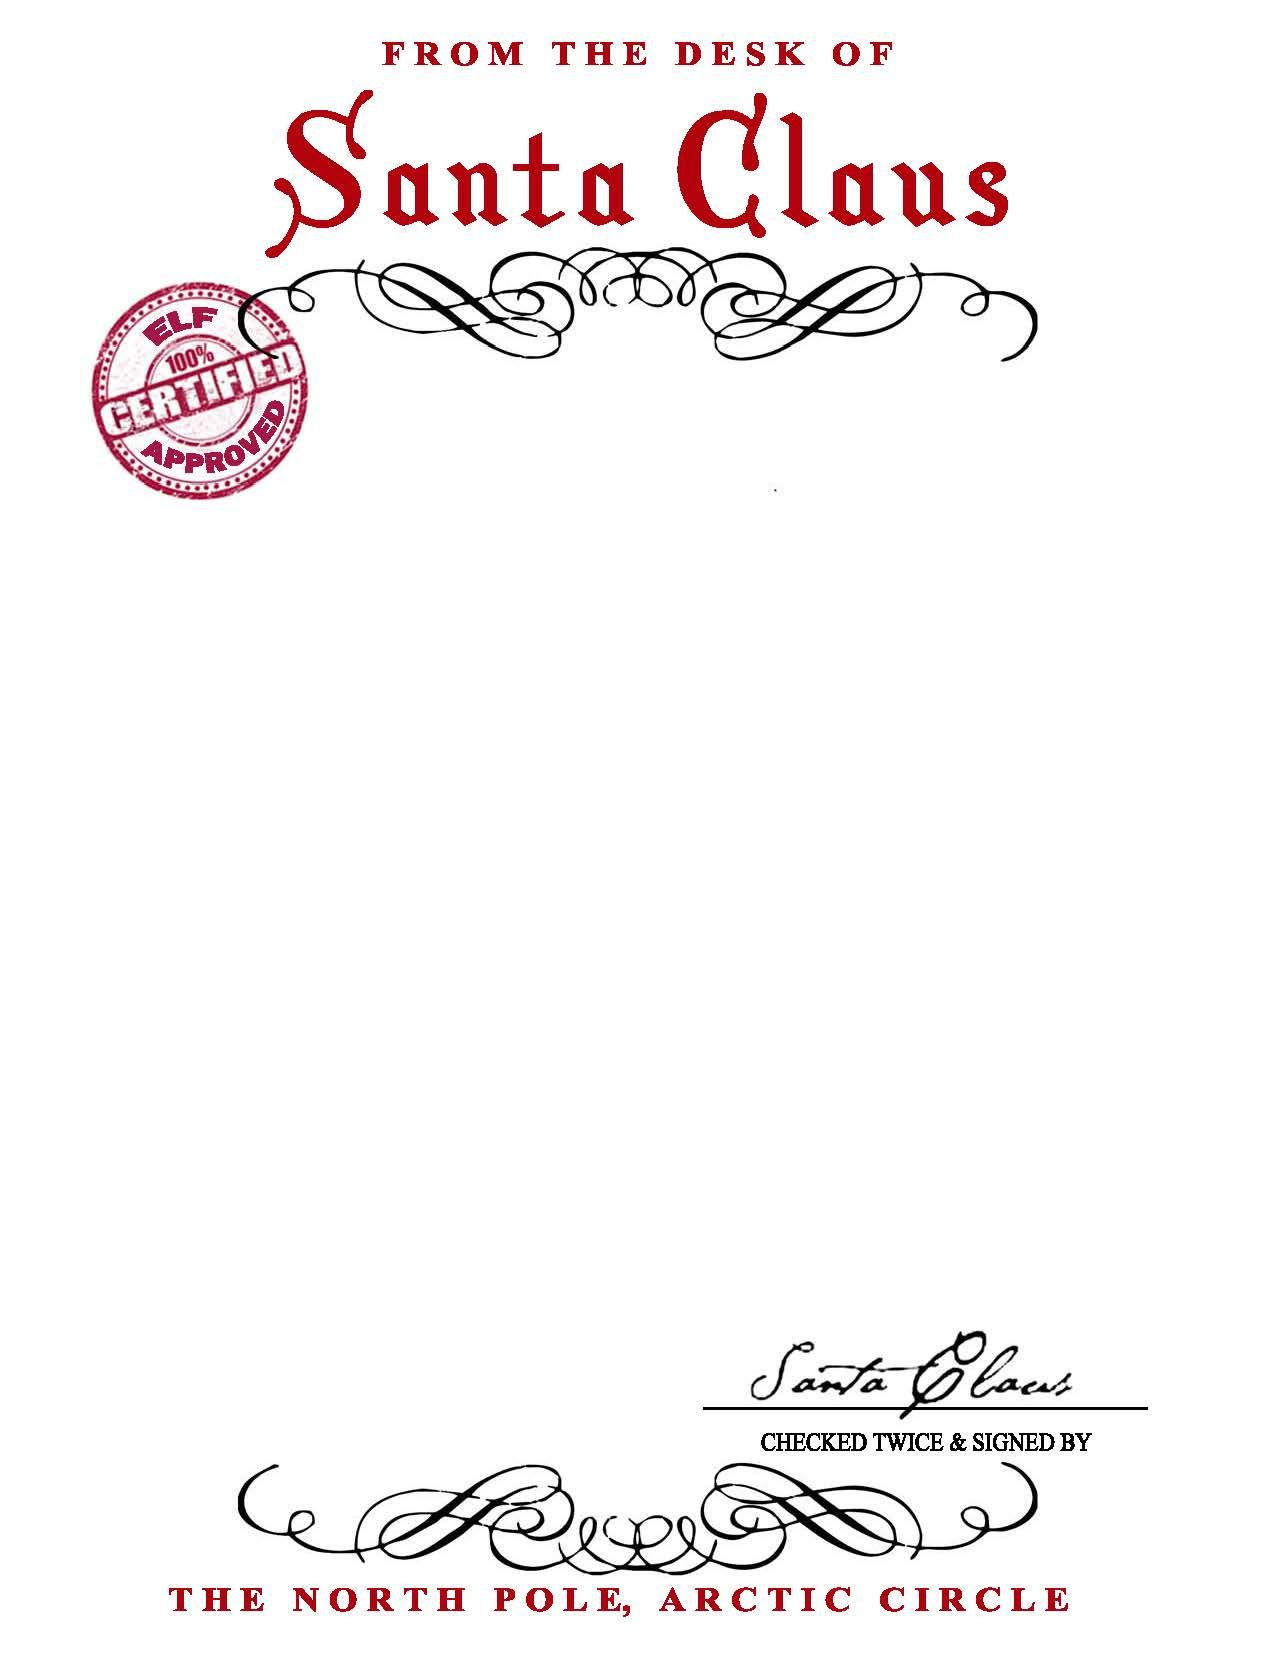 SANTA CLAUS LETTERHEAD Will bring lots of joy to children – Santa Letter Template